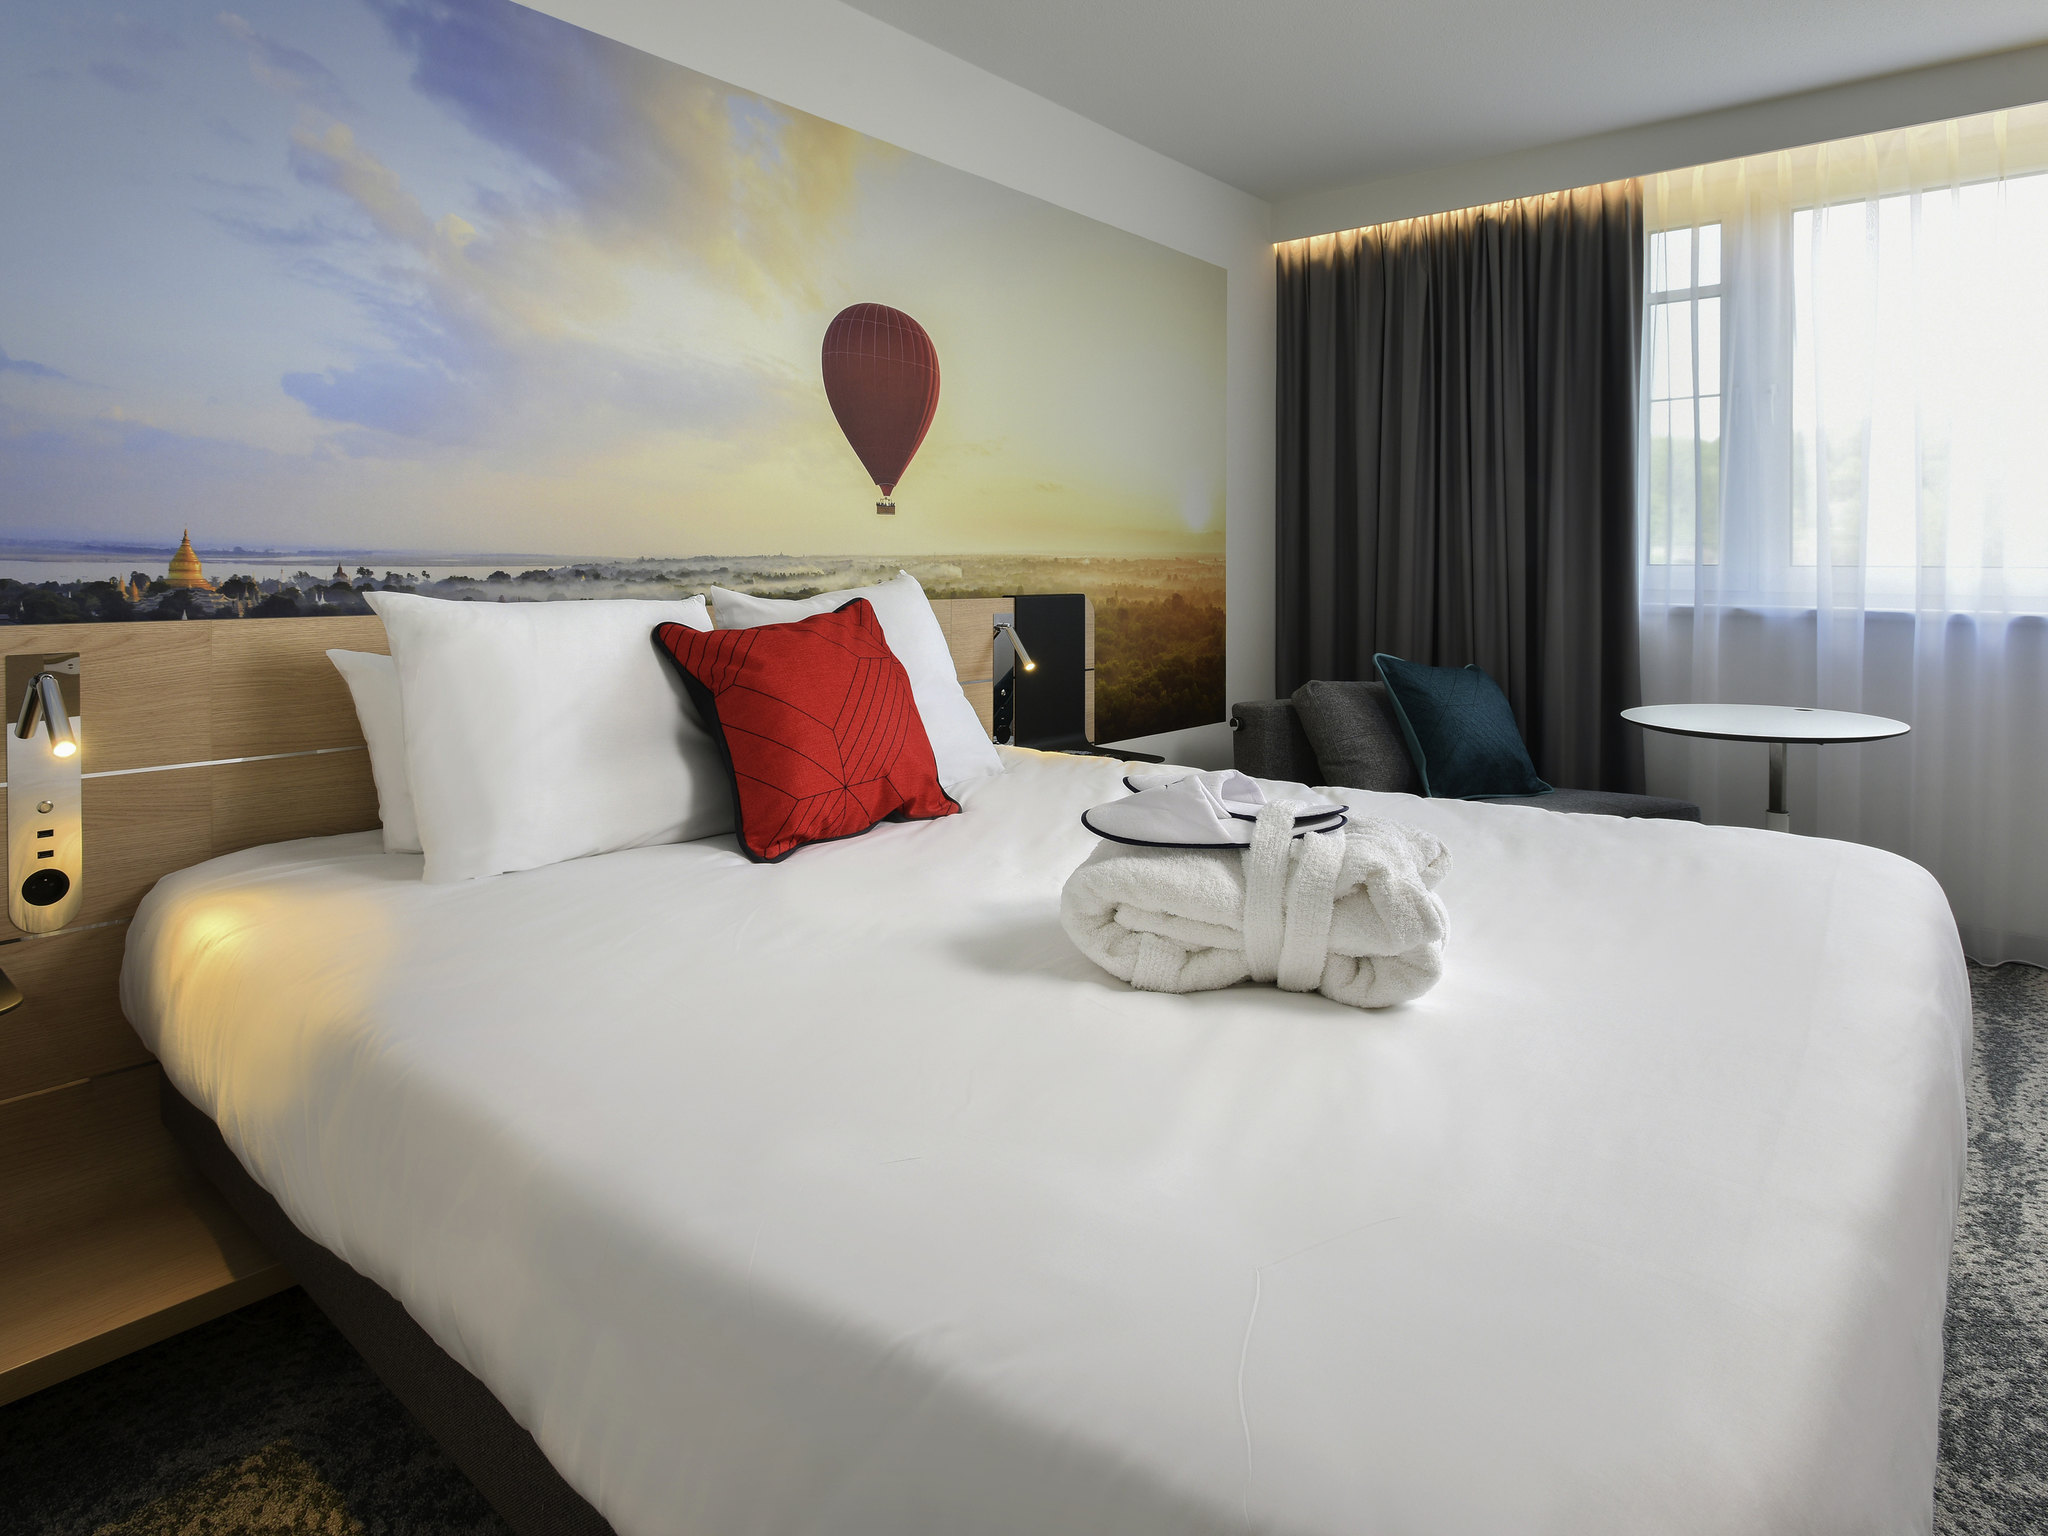 Hotel – Hotel Wavre Brussels East